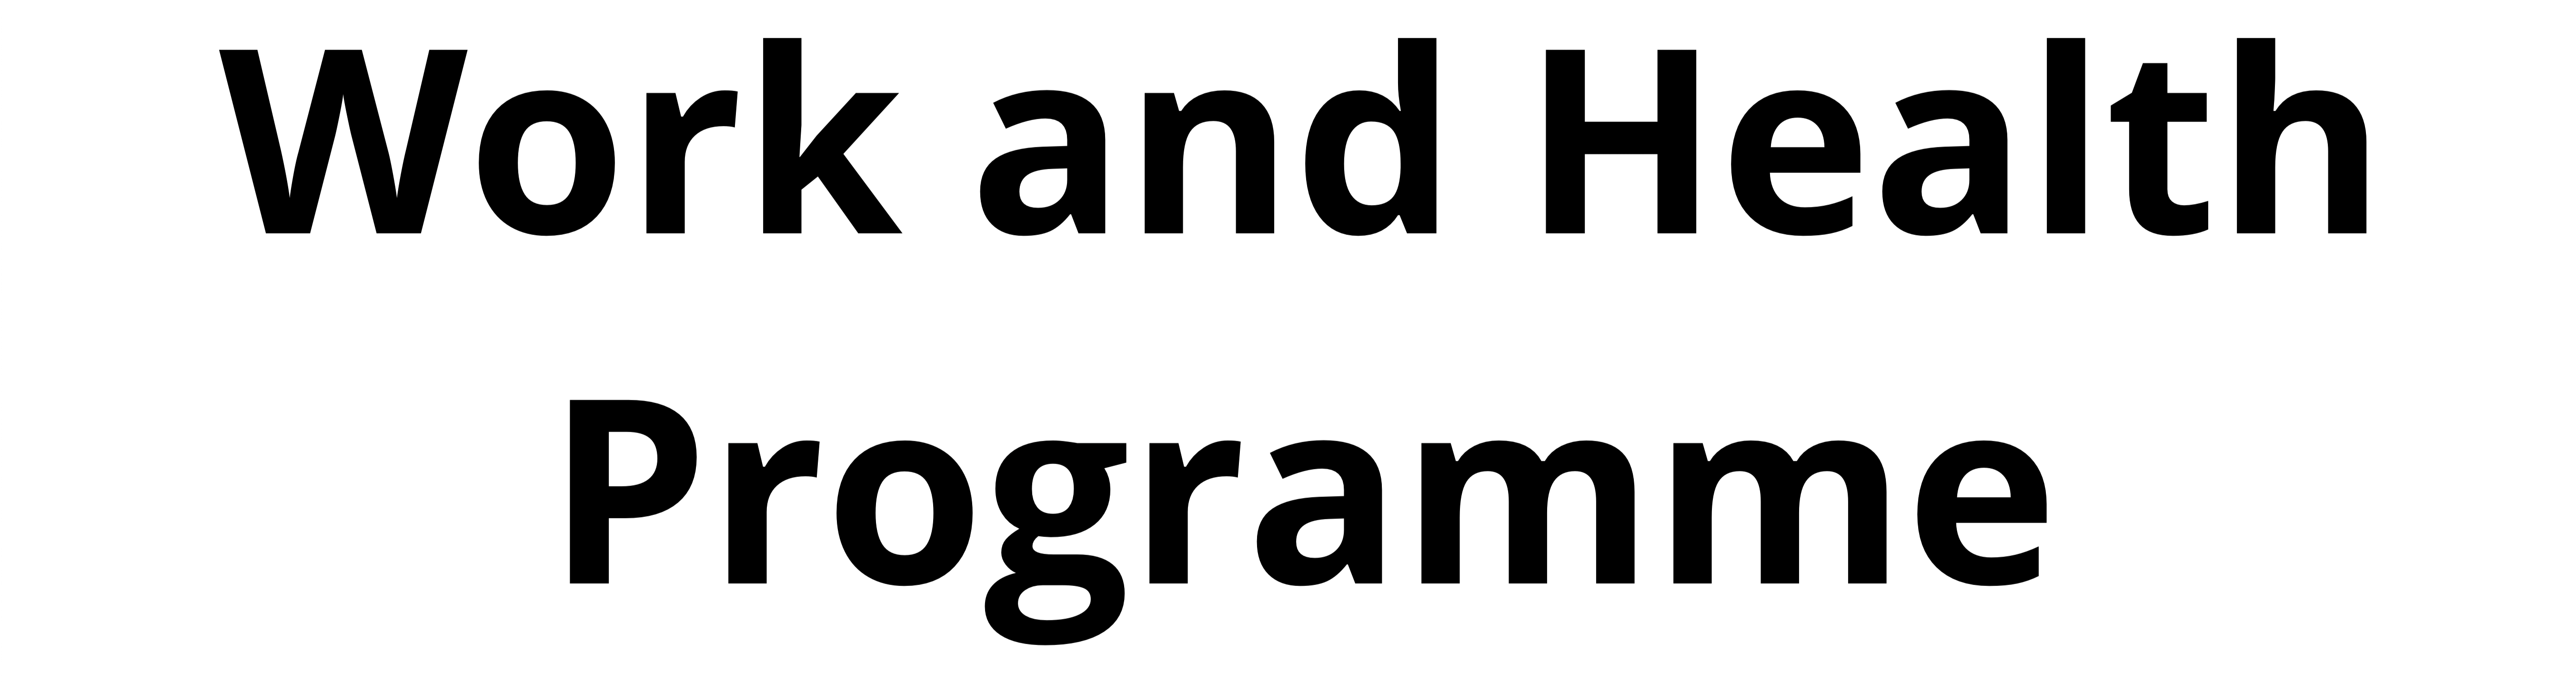 Work and Health Programme Portal